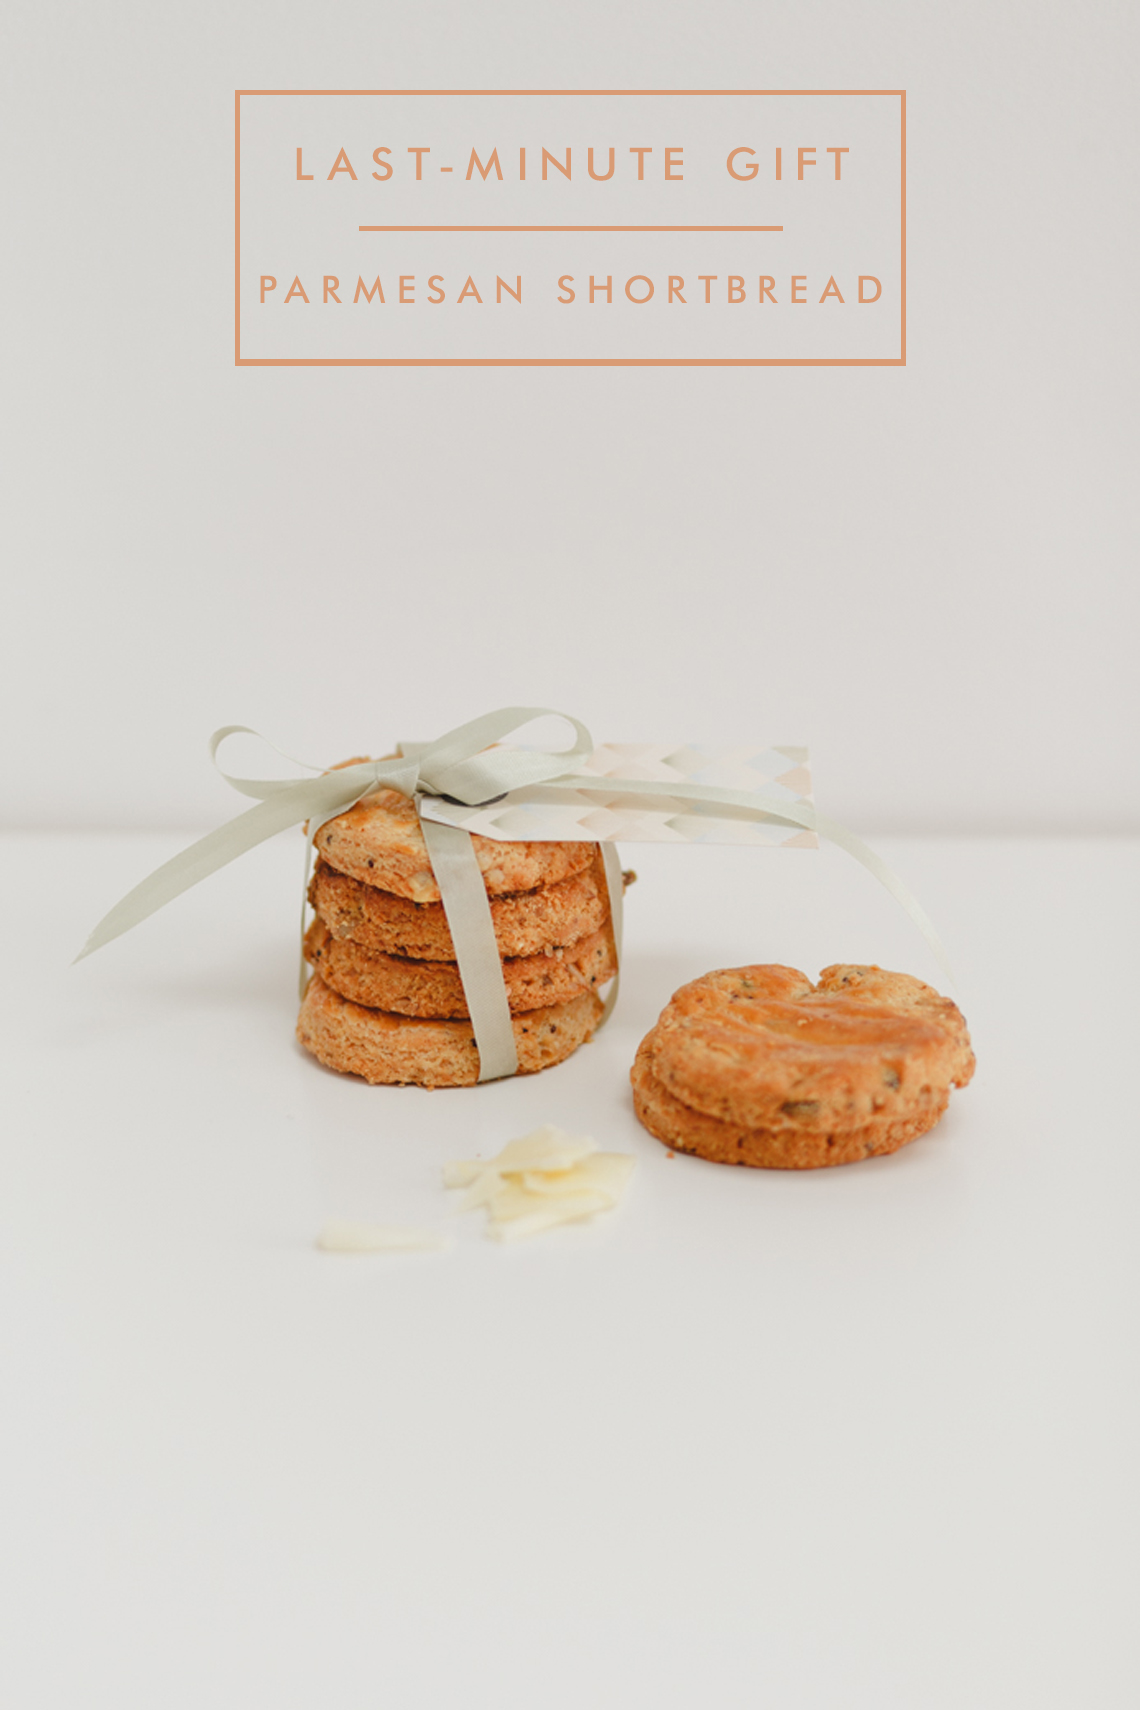 BLOVED Lifestyle Blog Christmas Gift Guide Last Minute Gifts Claire Graham Photography Parmesan Shortbread